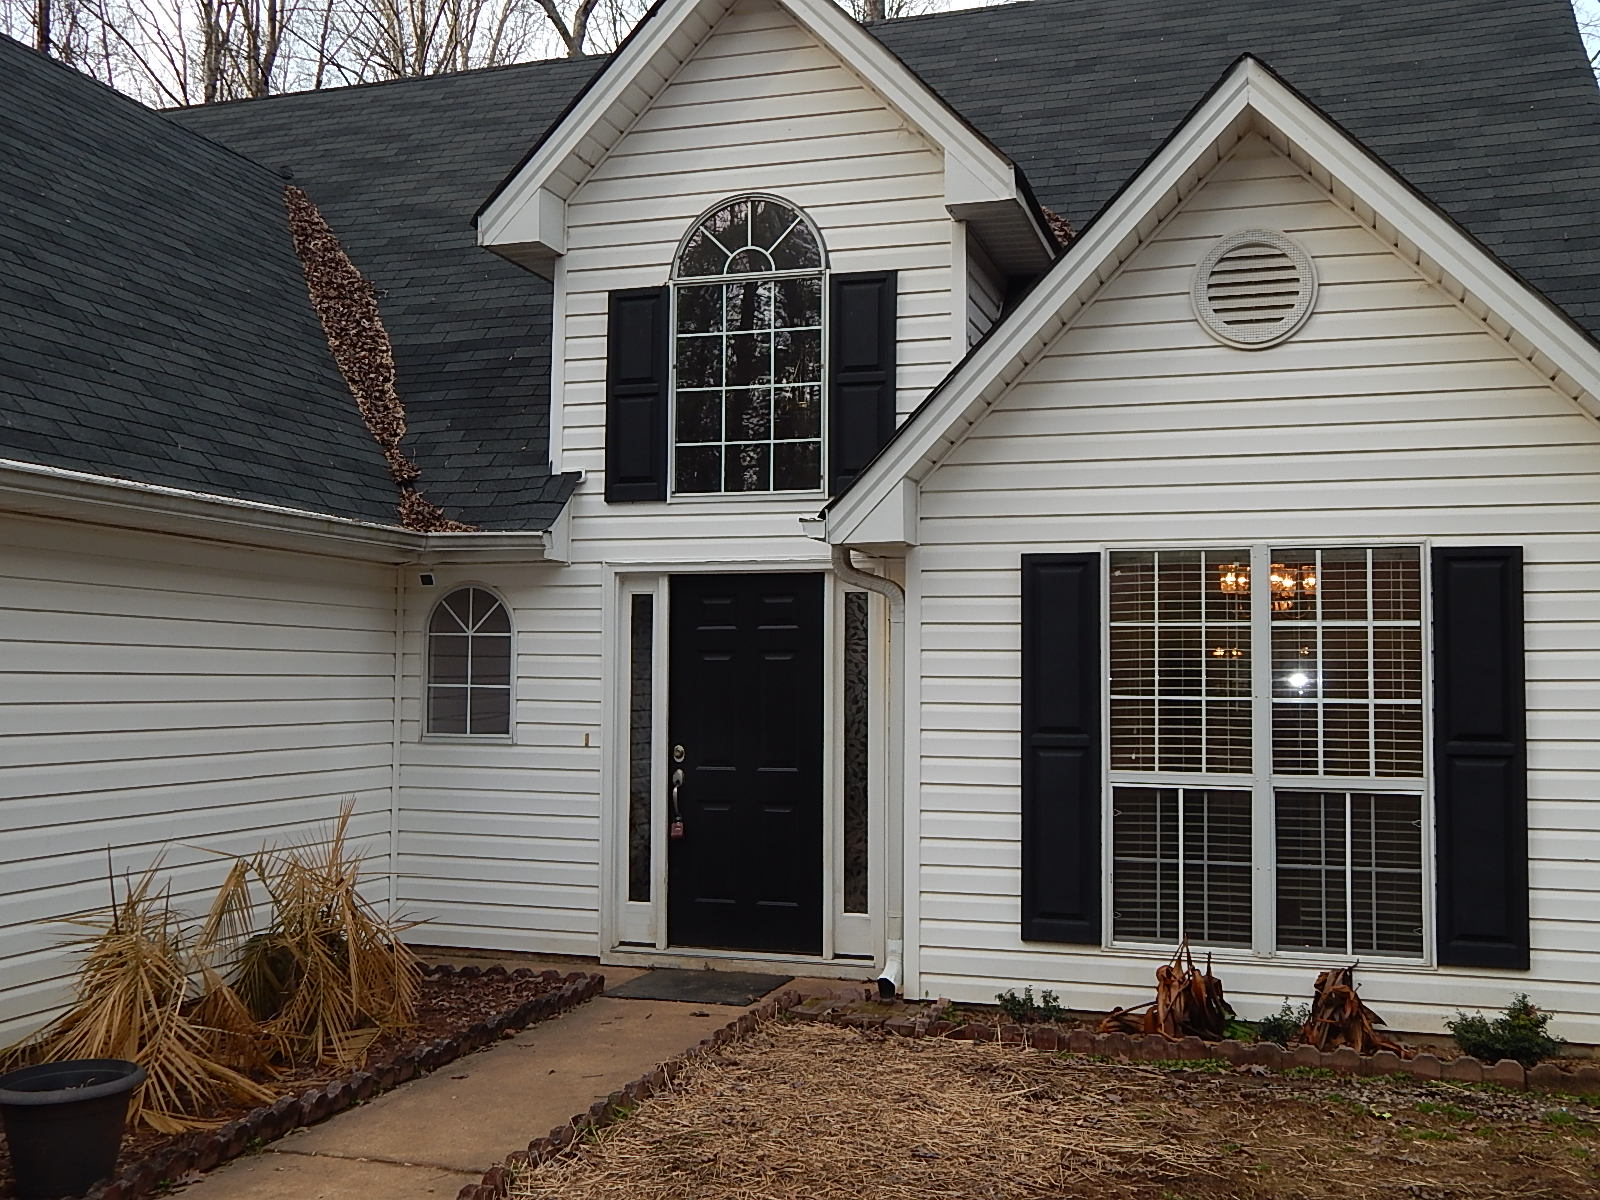 Home for rent 7020 Lawson Drive, Gainesville, GA 30506